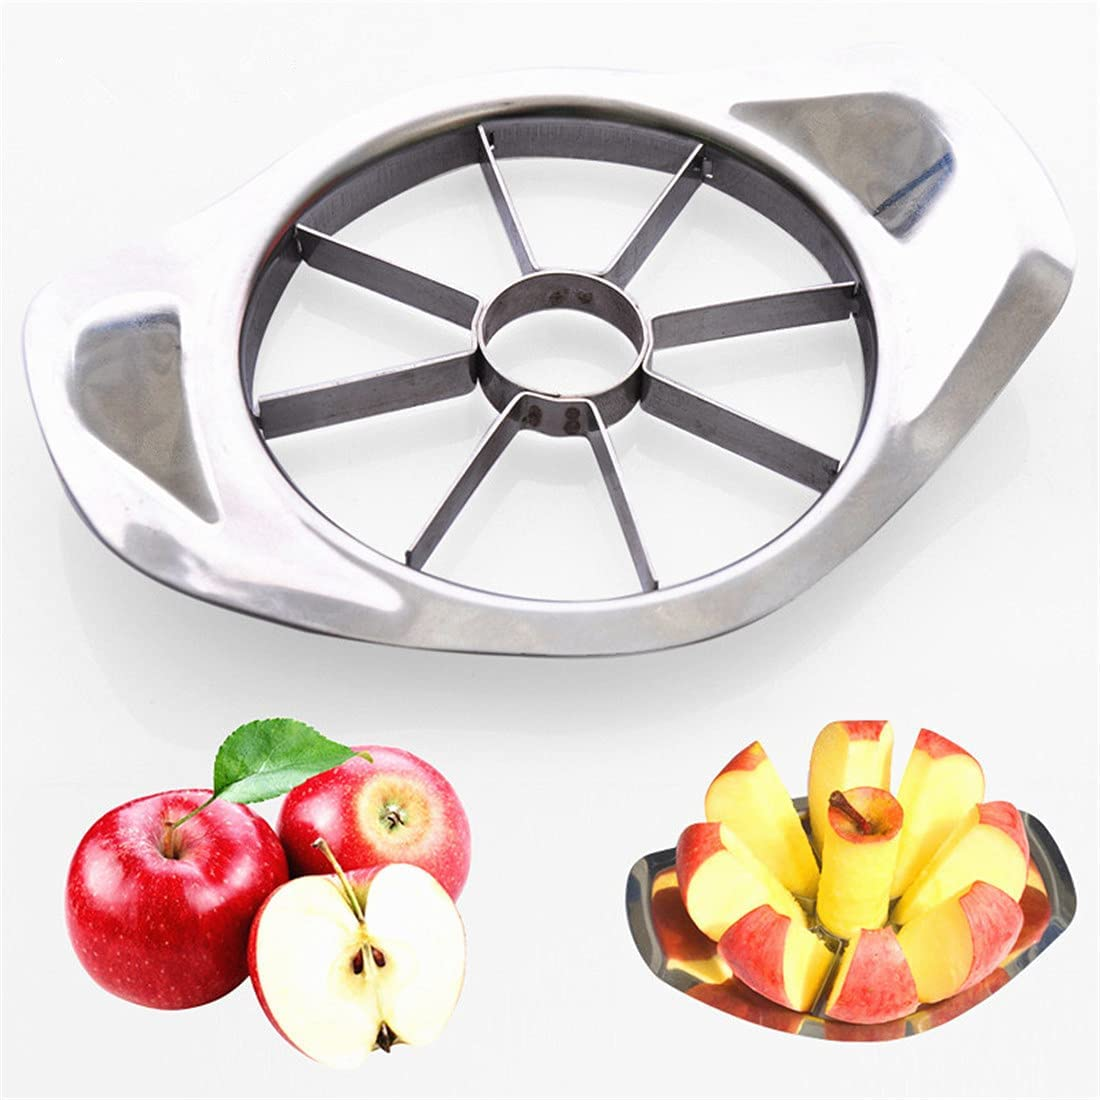 Factory outlet Stainless Steel Fruit Cutter Rare Apple Corer Slicer Co Knife Cutting